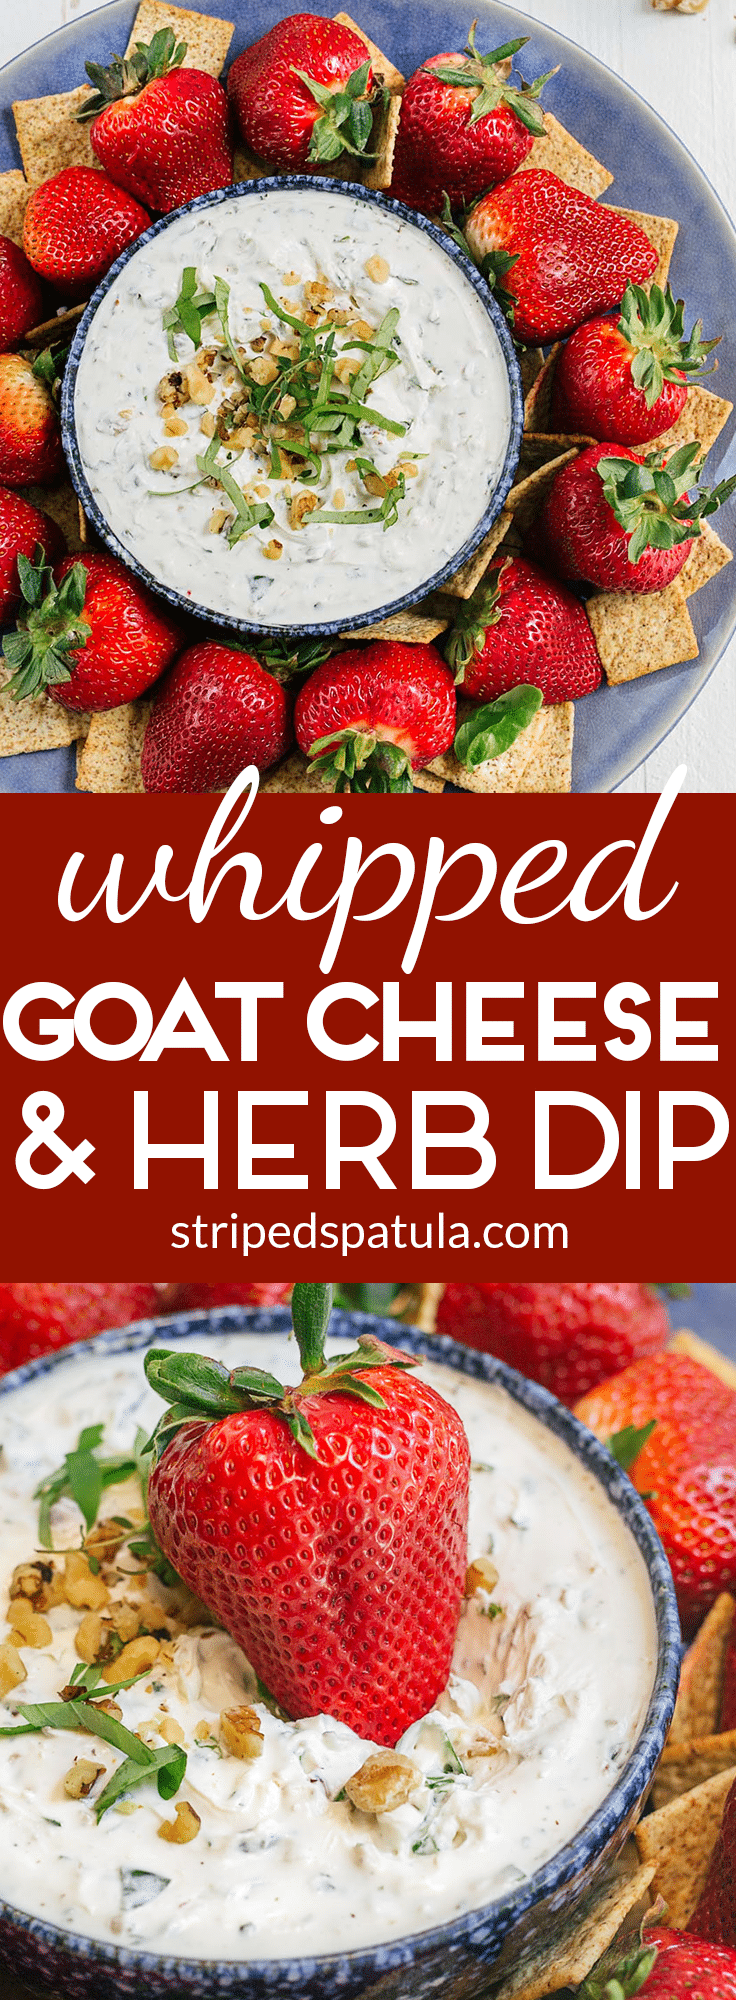 [sponsored by @calgiantberries] Goat Cheese | Cheese Dip | Cheese Dip Recipes | Healthy Food | Healthy Dips | Goat Cheese Recipes